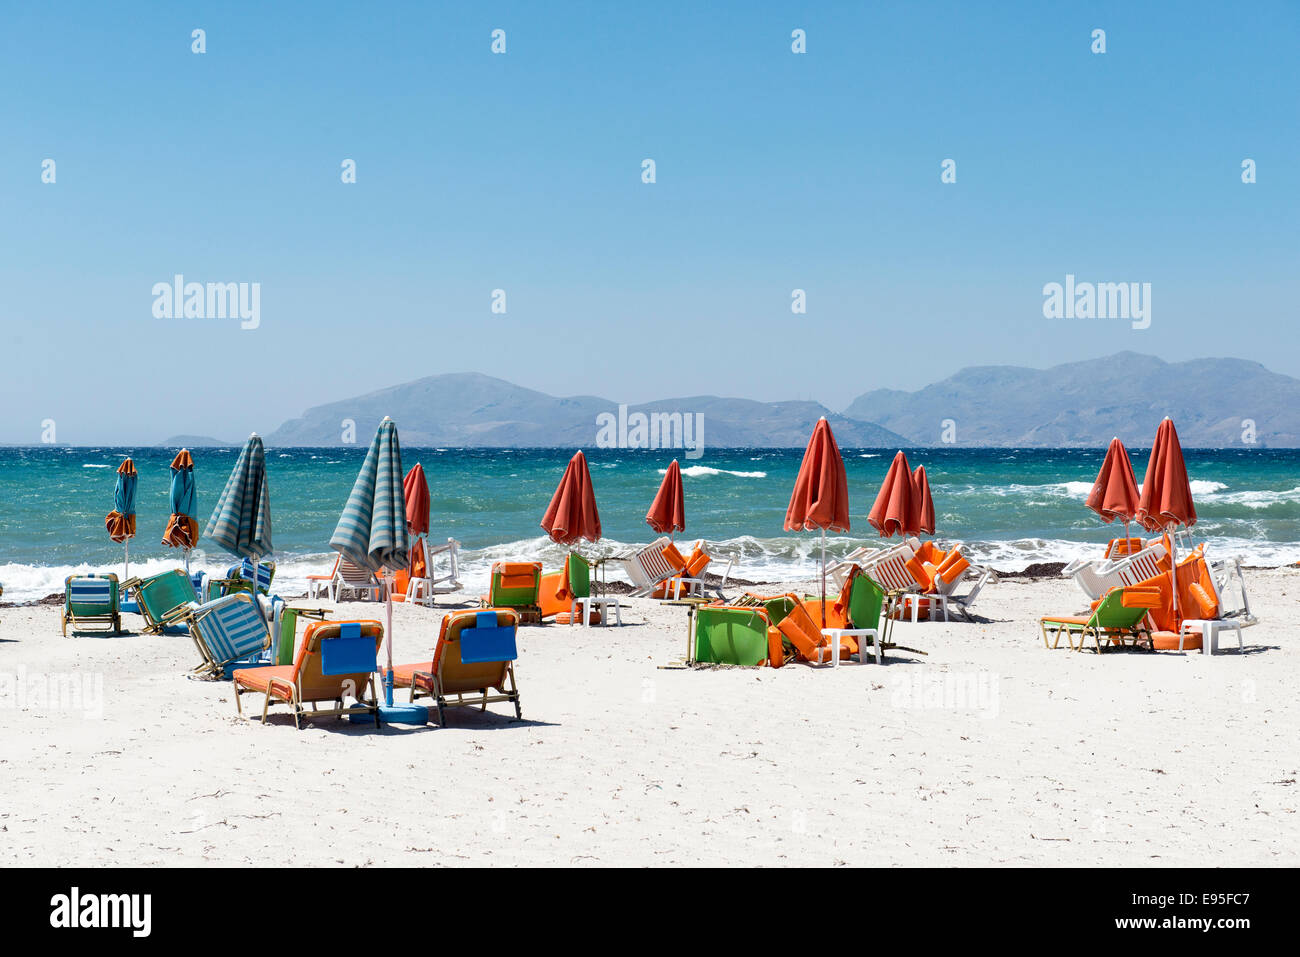 Empty beach with closed parasols and sun loungers on the beach of Mastichari, island of Kos, Greece - Stock Image